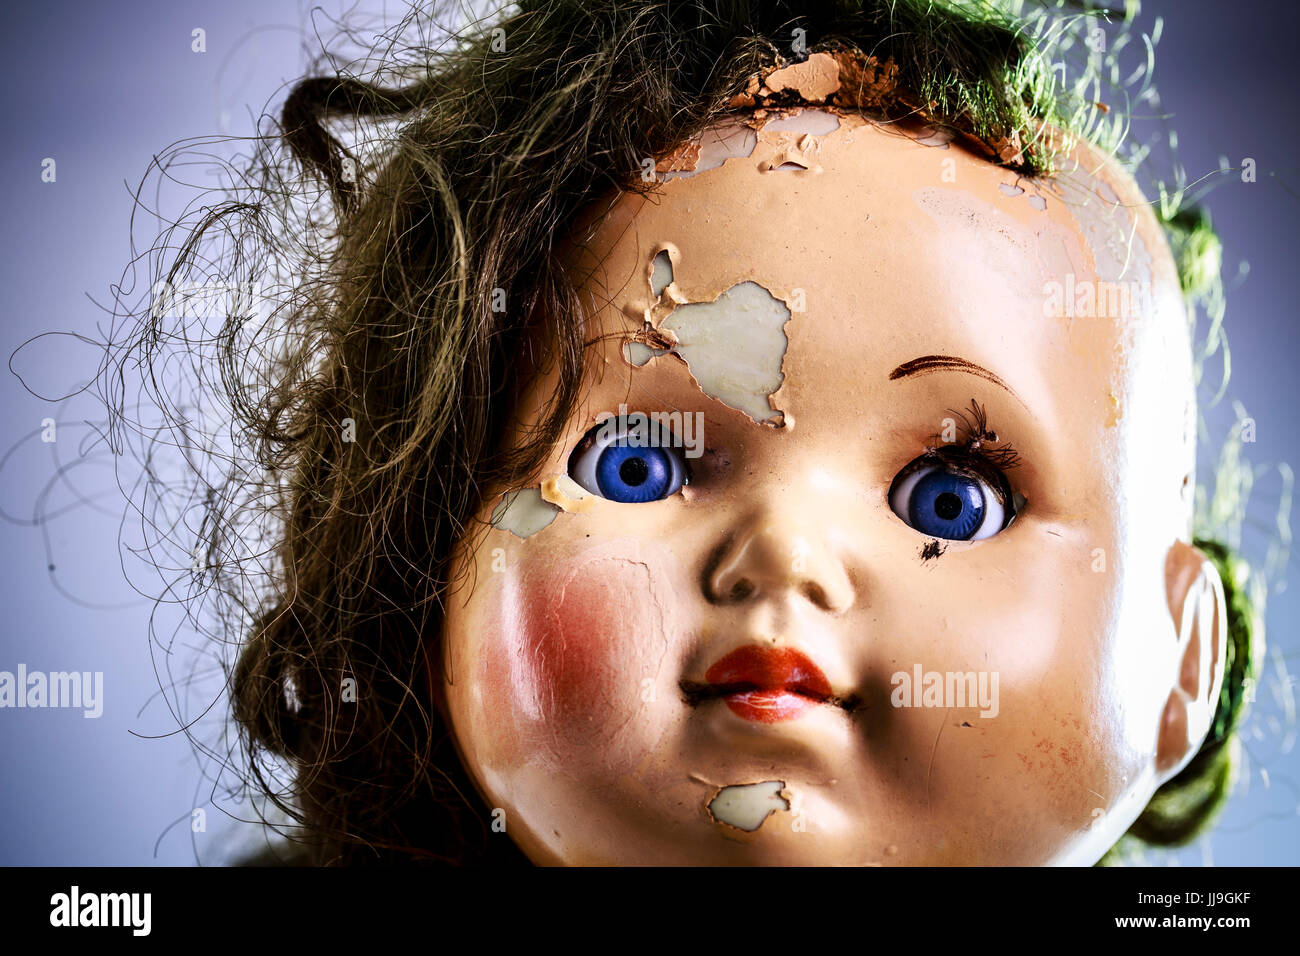 head of beatiful scary doll like from horror movie evil face stock